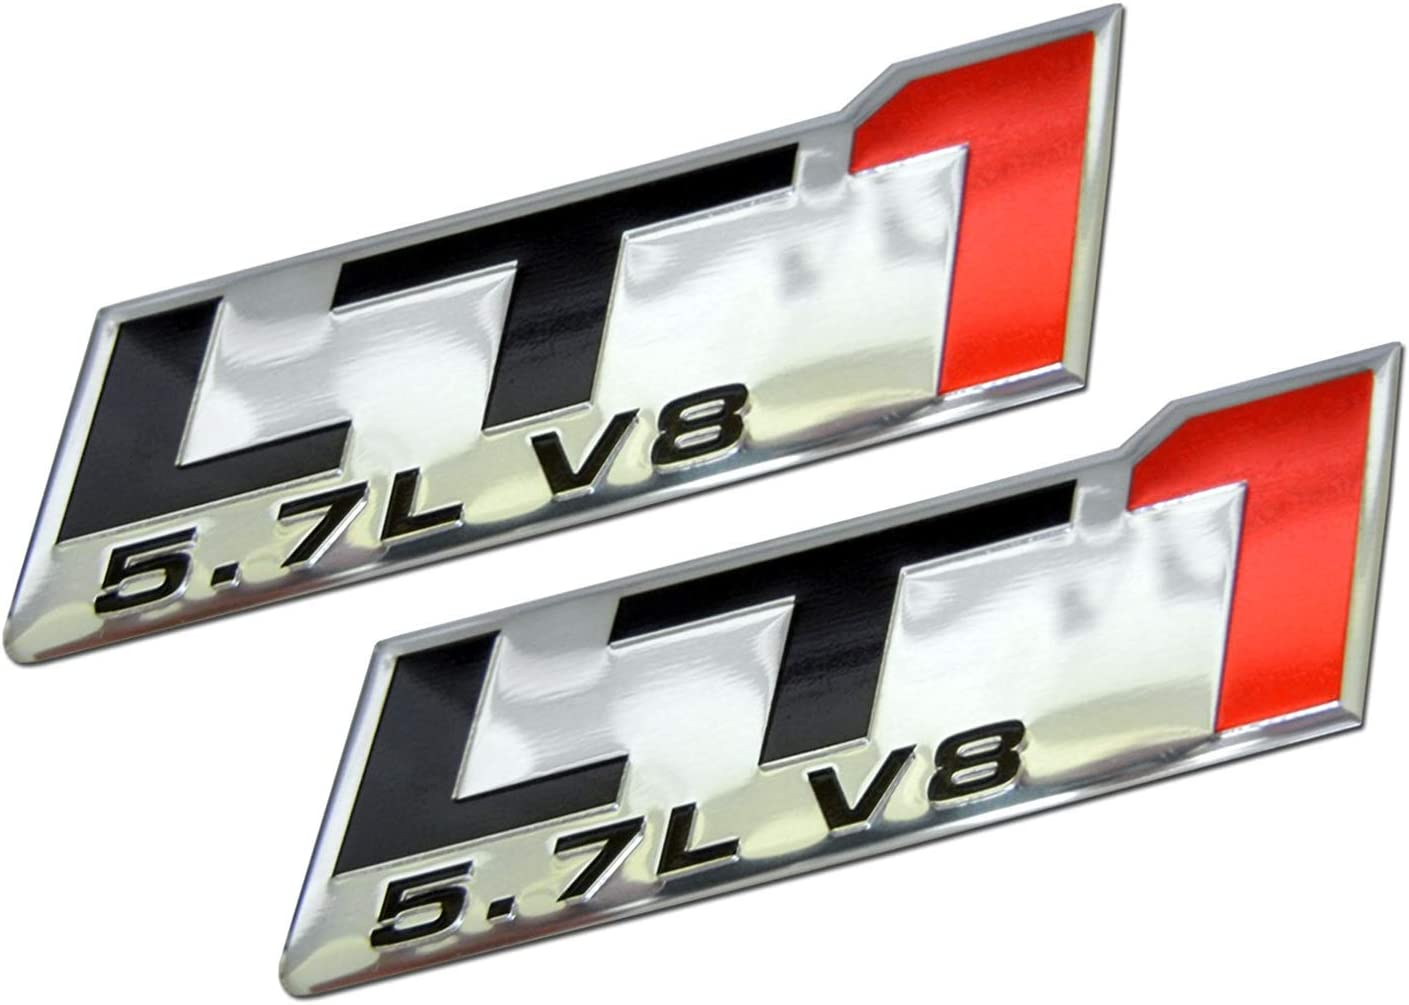 LS1 black 2pcs LS1 Embossed Black on Highly Polished Silver Real Aluminum Auto Emblem Badge Nameplate Compatible for Chevy Corvette Camaro Pontiac HSV Opel